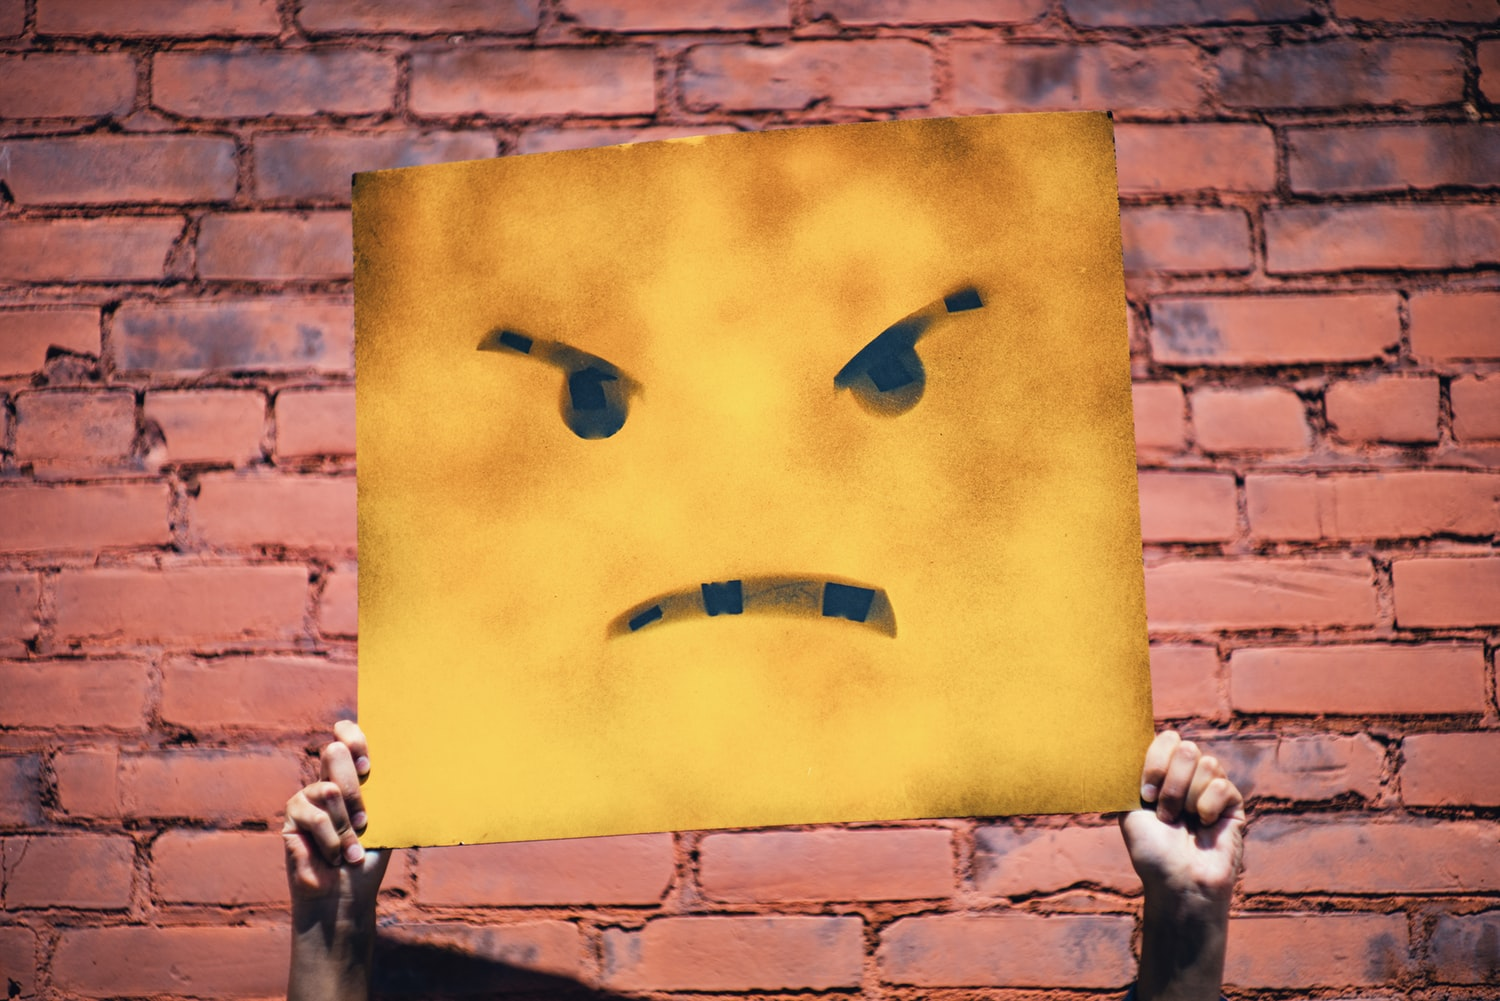 Hands holding yellow angry face illustration in front of brick wall